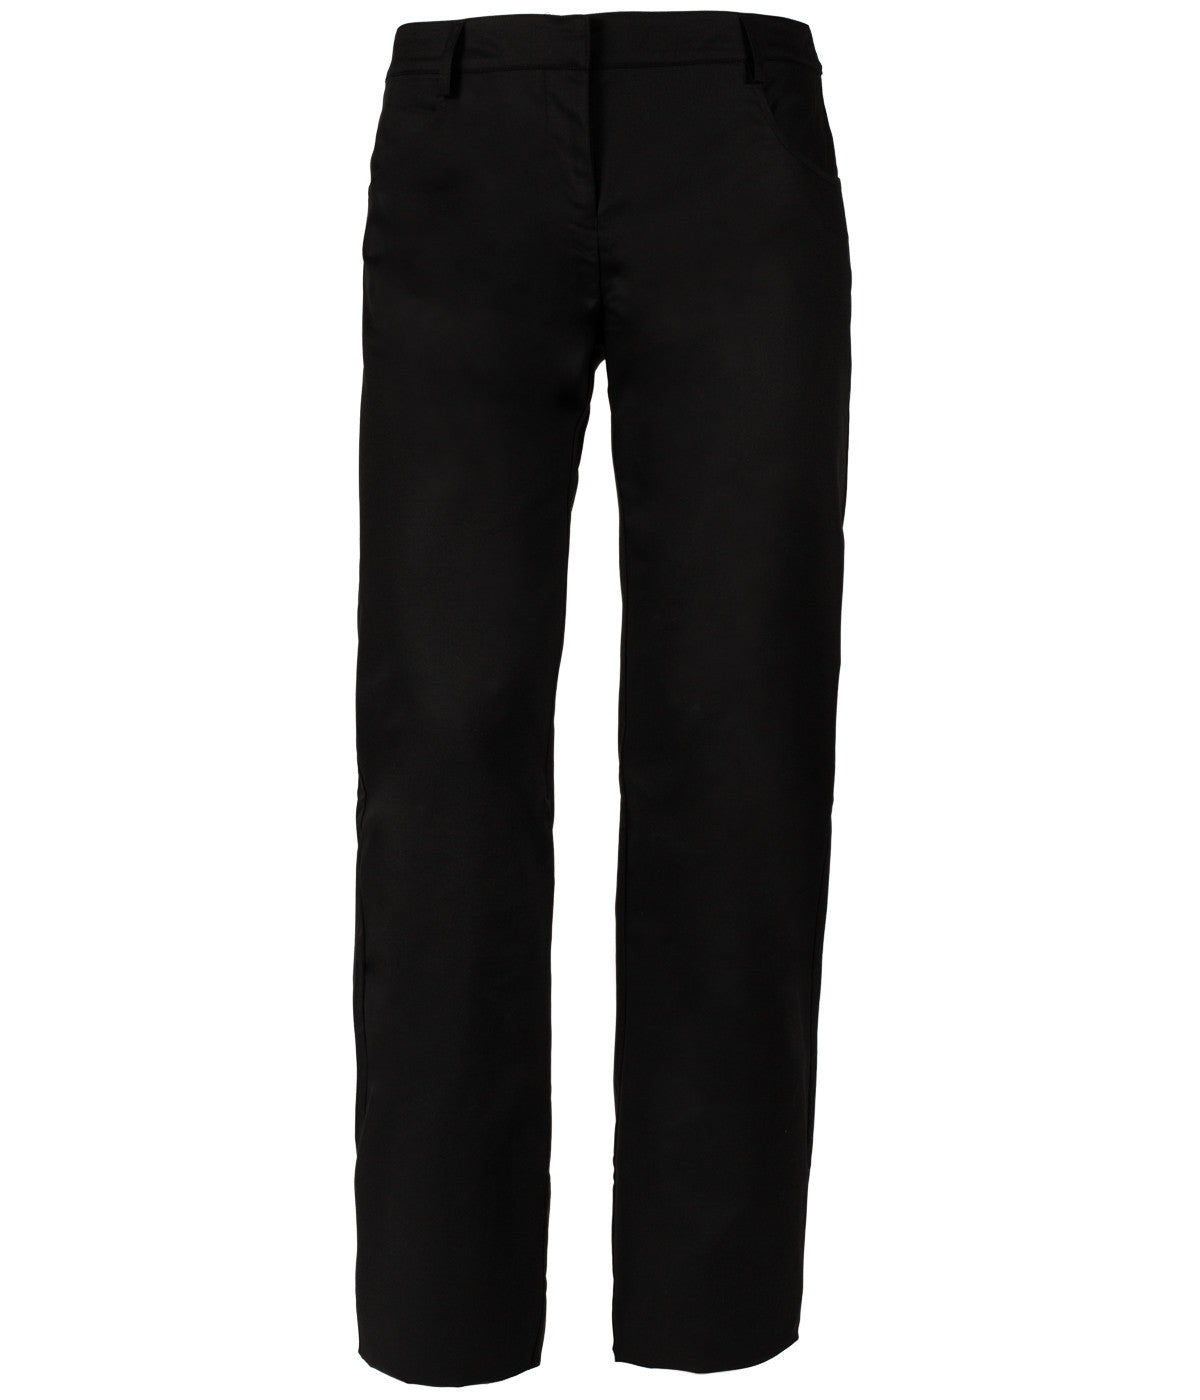 T33 Ladies Hospitality Trousers